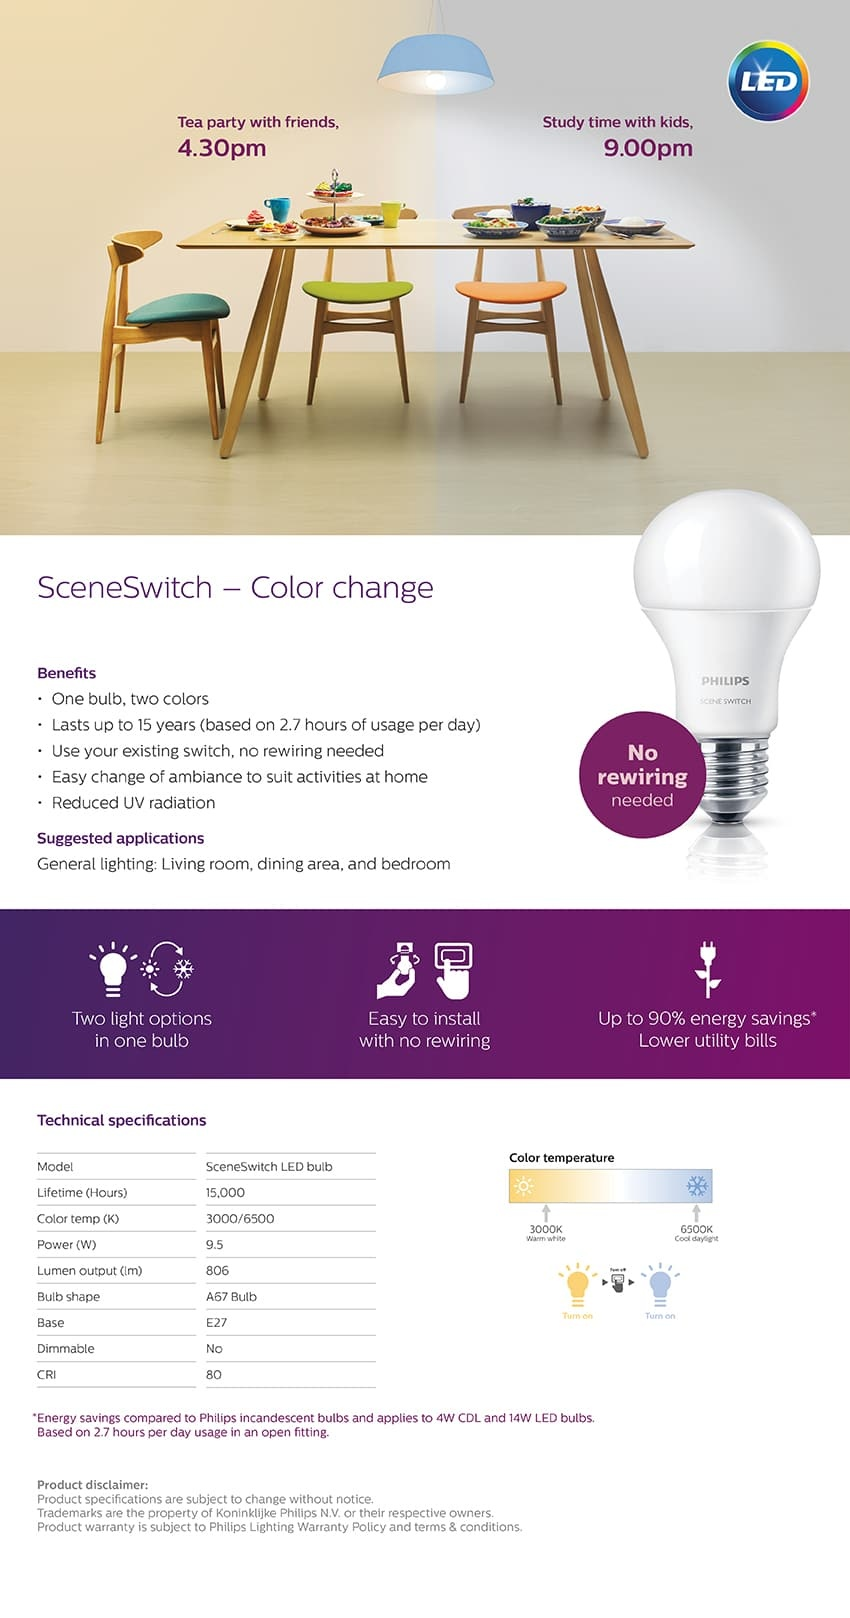 (4 PACKS) Philips SceneSwitch (Color Temperature Change) LED Bulb 8W  (equivalent of 60W) E27 Base